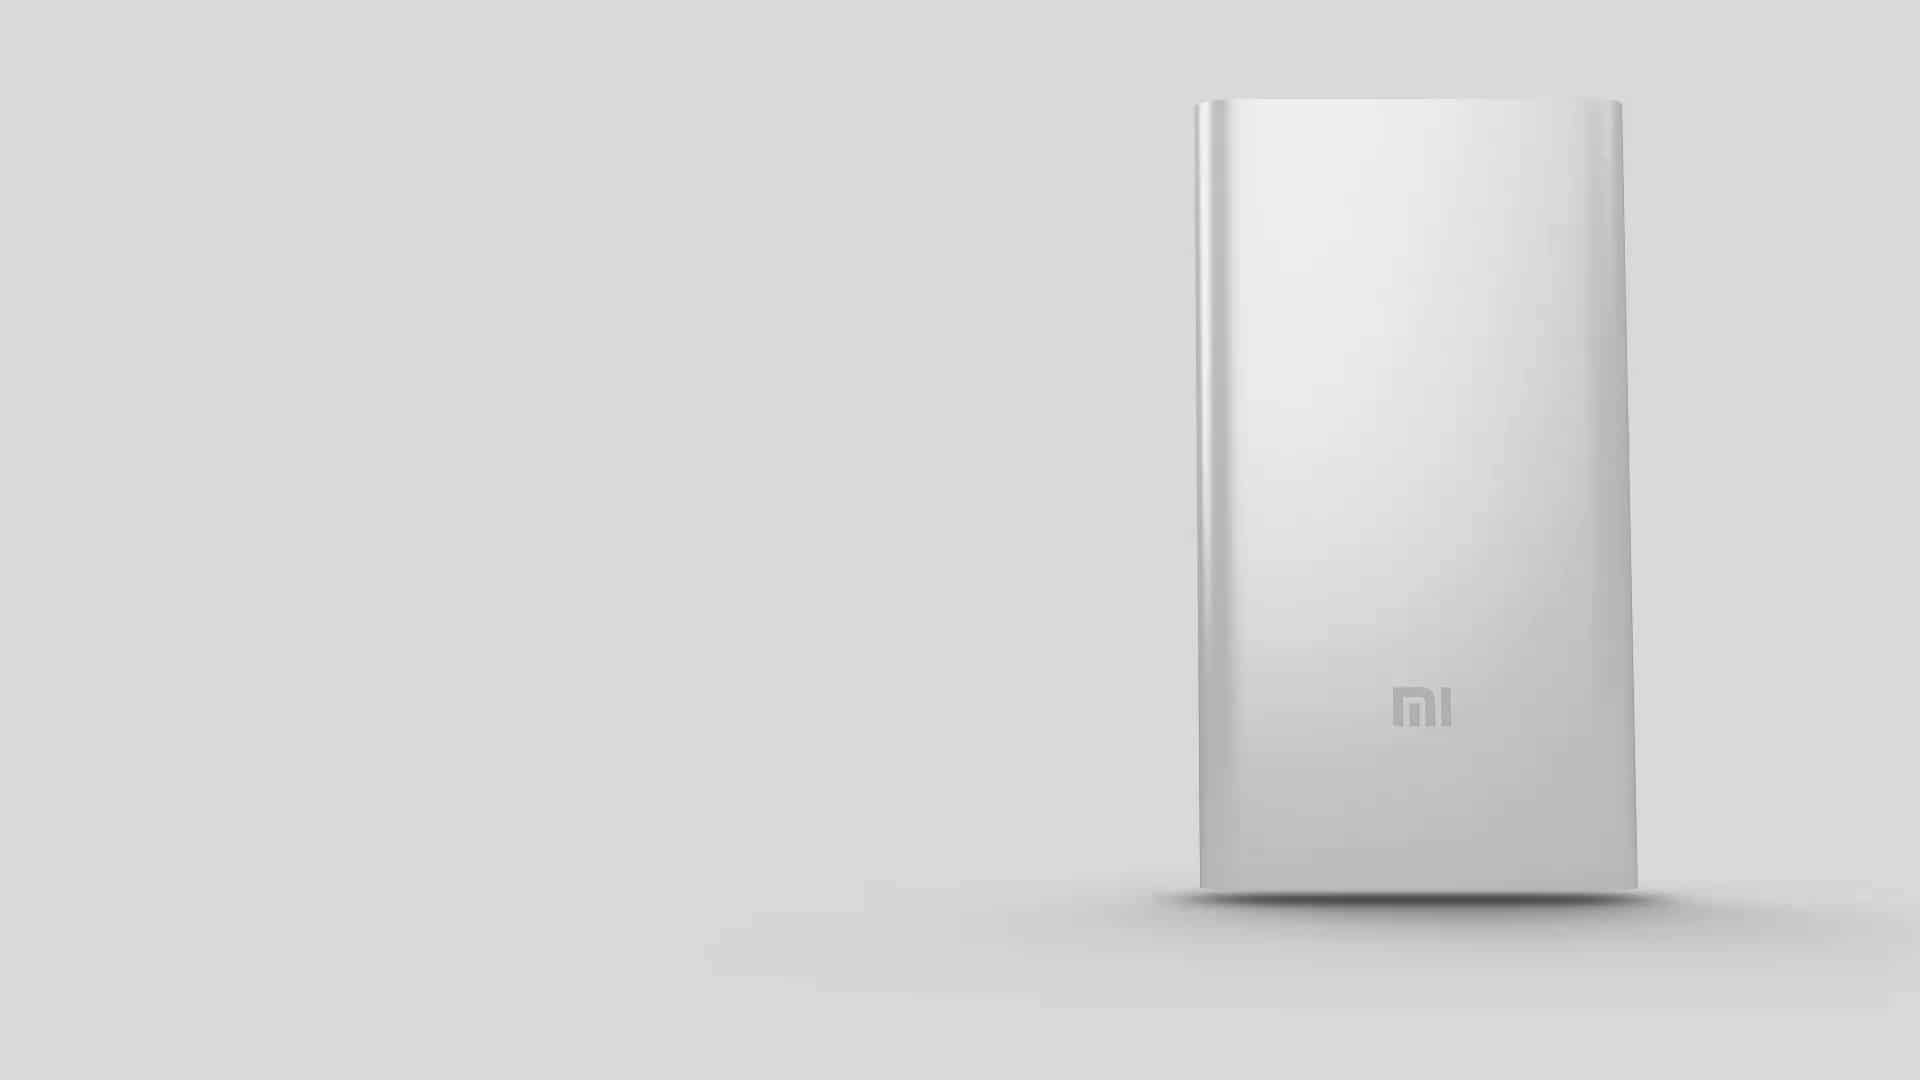 Original Xiaomi 5000mAh Mobile Power Bank Li-Polymer Battery Charger - SILVER 120071401